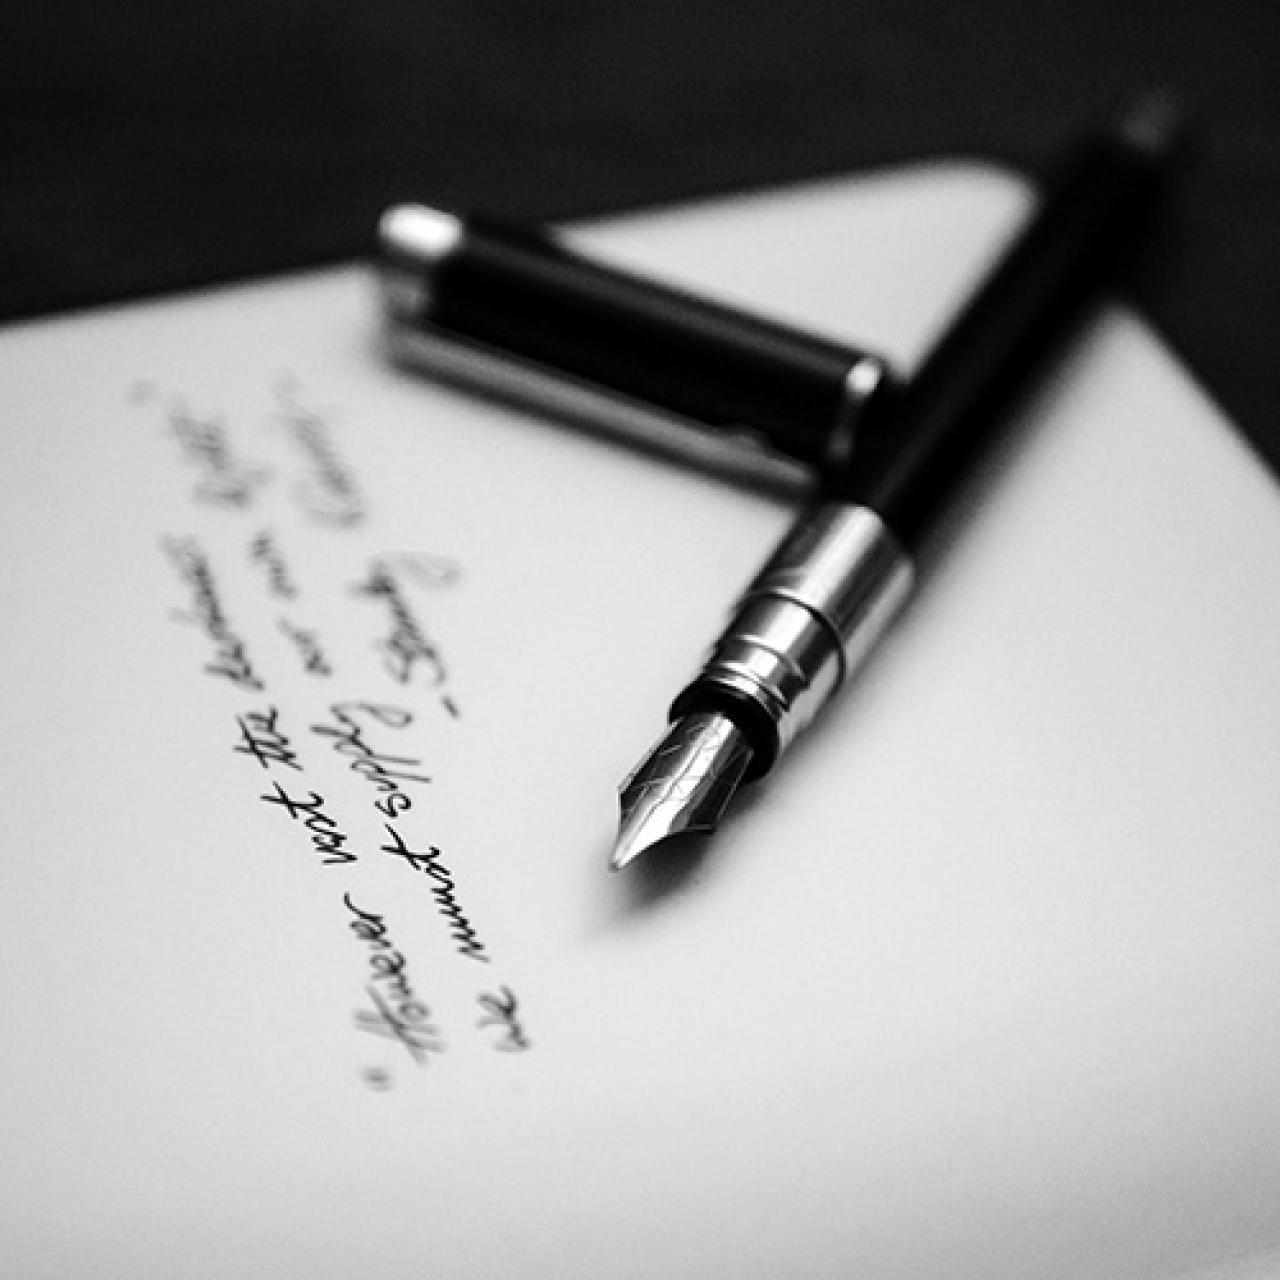 Fountain pen and paper by Alvaro Serrano. Unsplash.